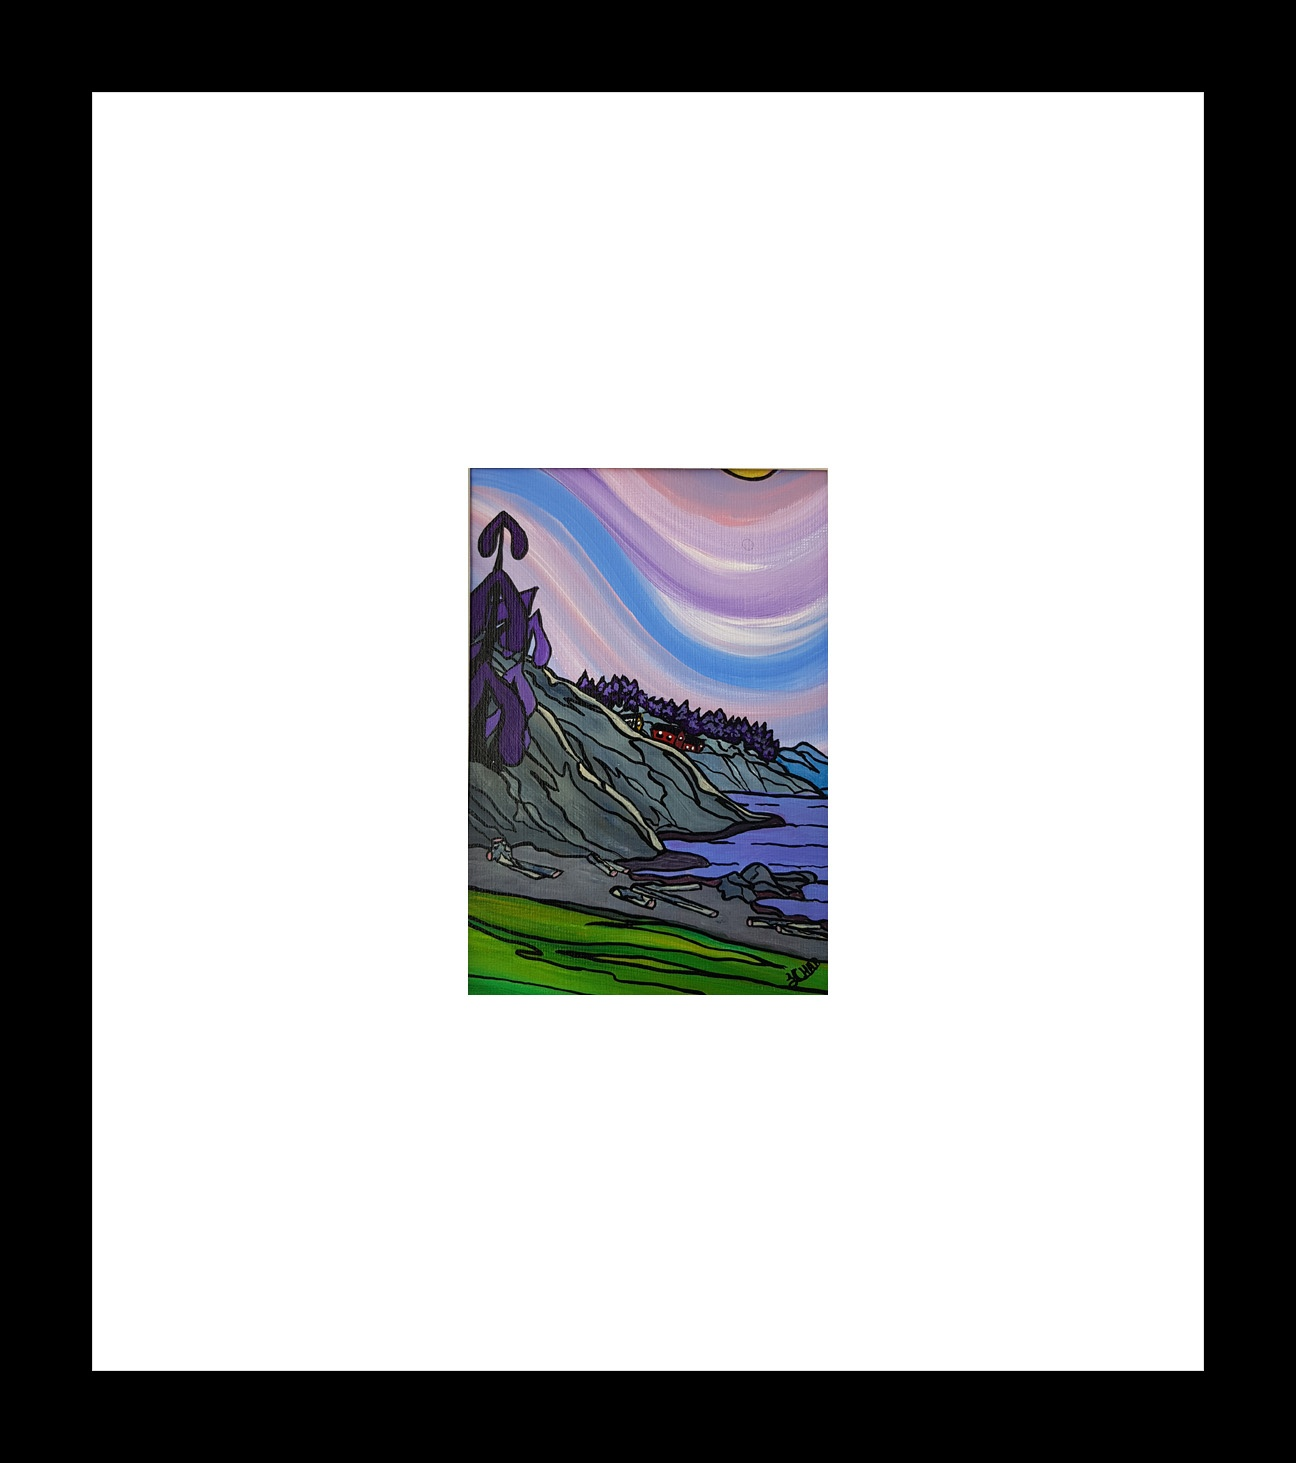 """Neck Point"" [2018] Image: 5"" x 7"". Framed: 12"" x 12"" Acrylic on 246 lb. paper $200.00"